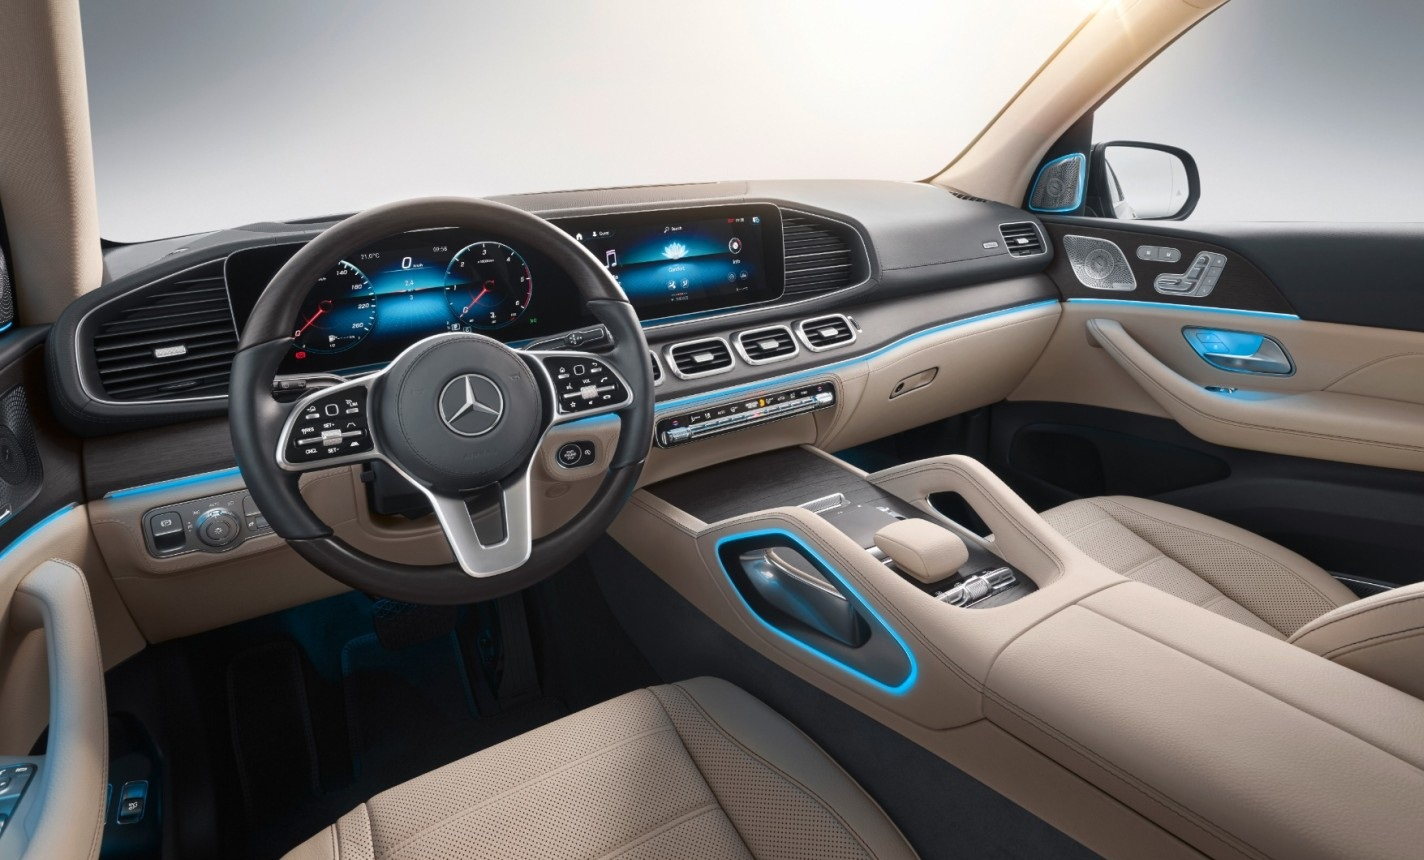 Mercedes-Benz GLS 450 4Matic AMG 2020 Interior